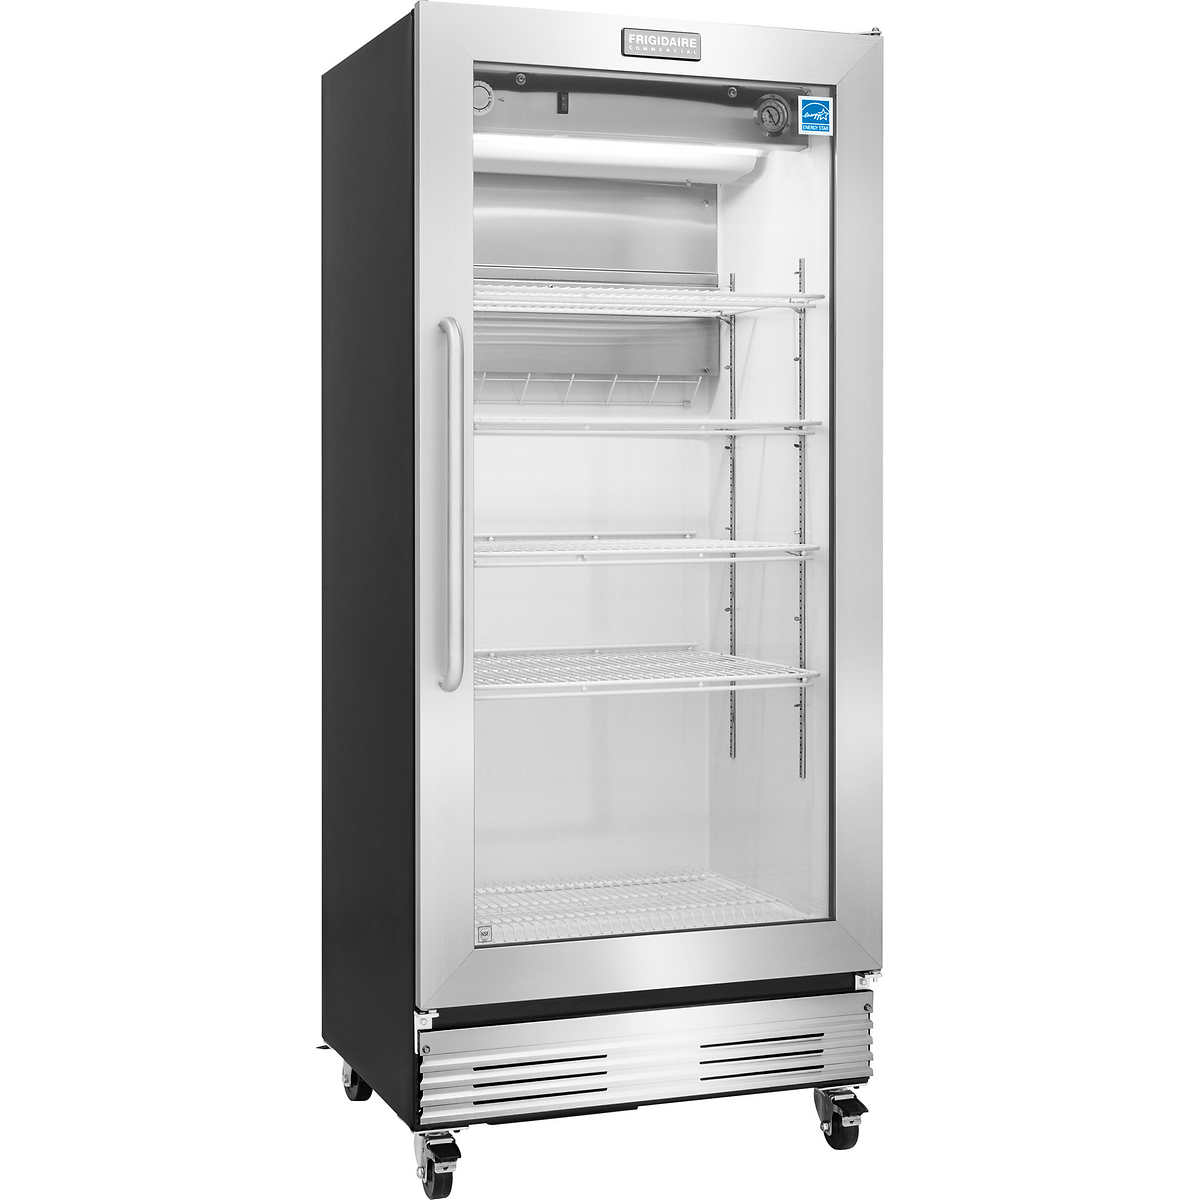 Commercial Refrigerators For Home Use Refrigerators Costco